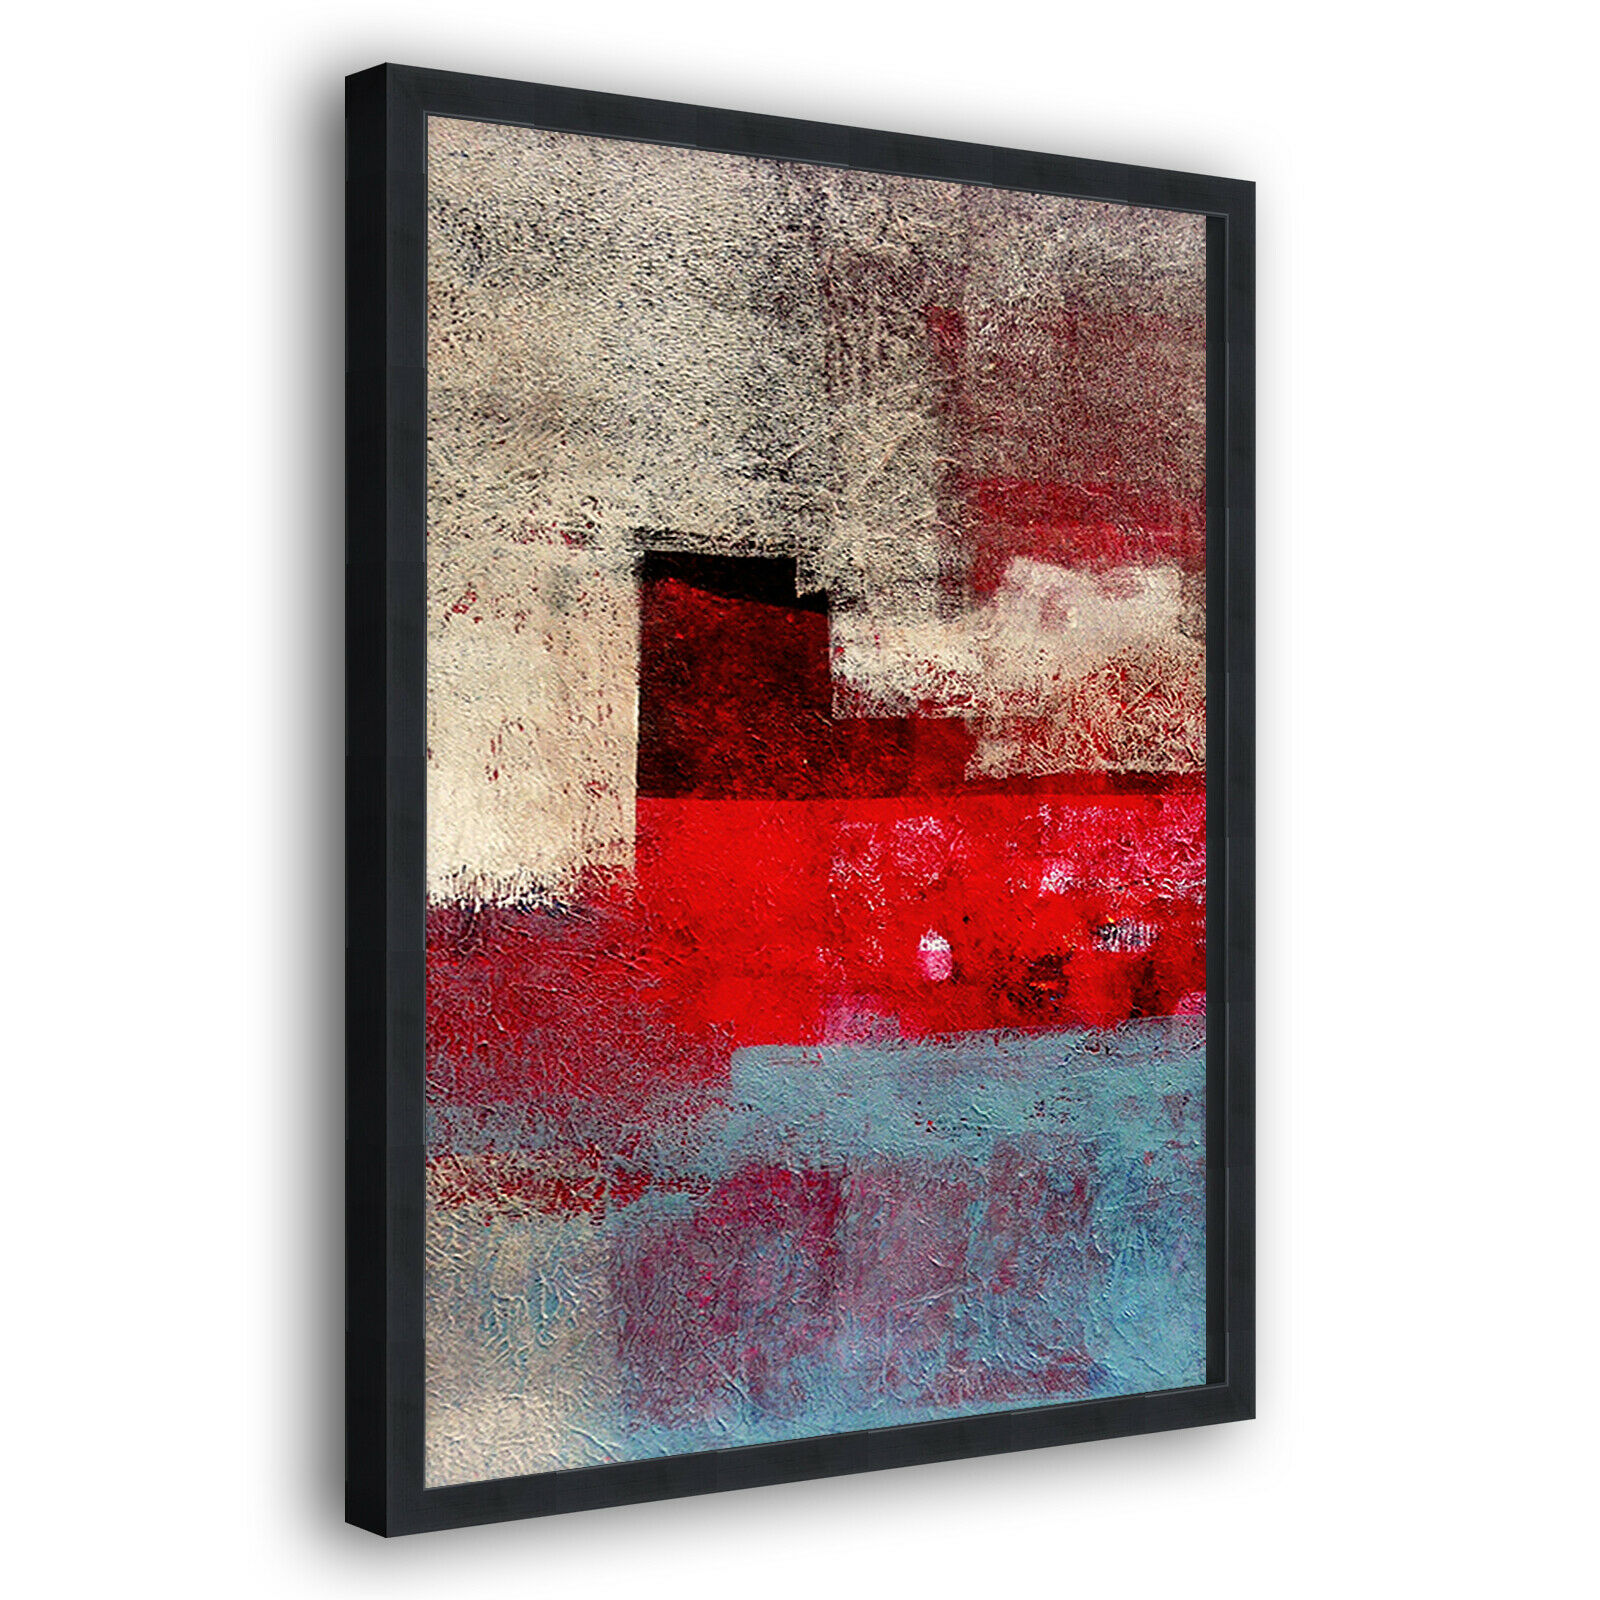 rot Blau Retro Modern Portrait Abstract Framed Wall Art Large Picture Print